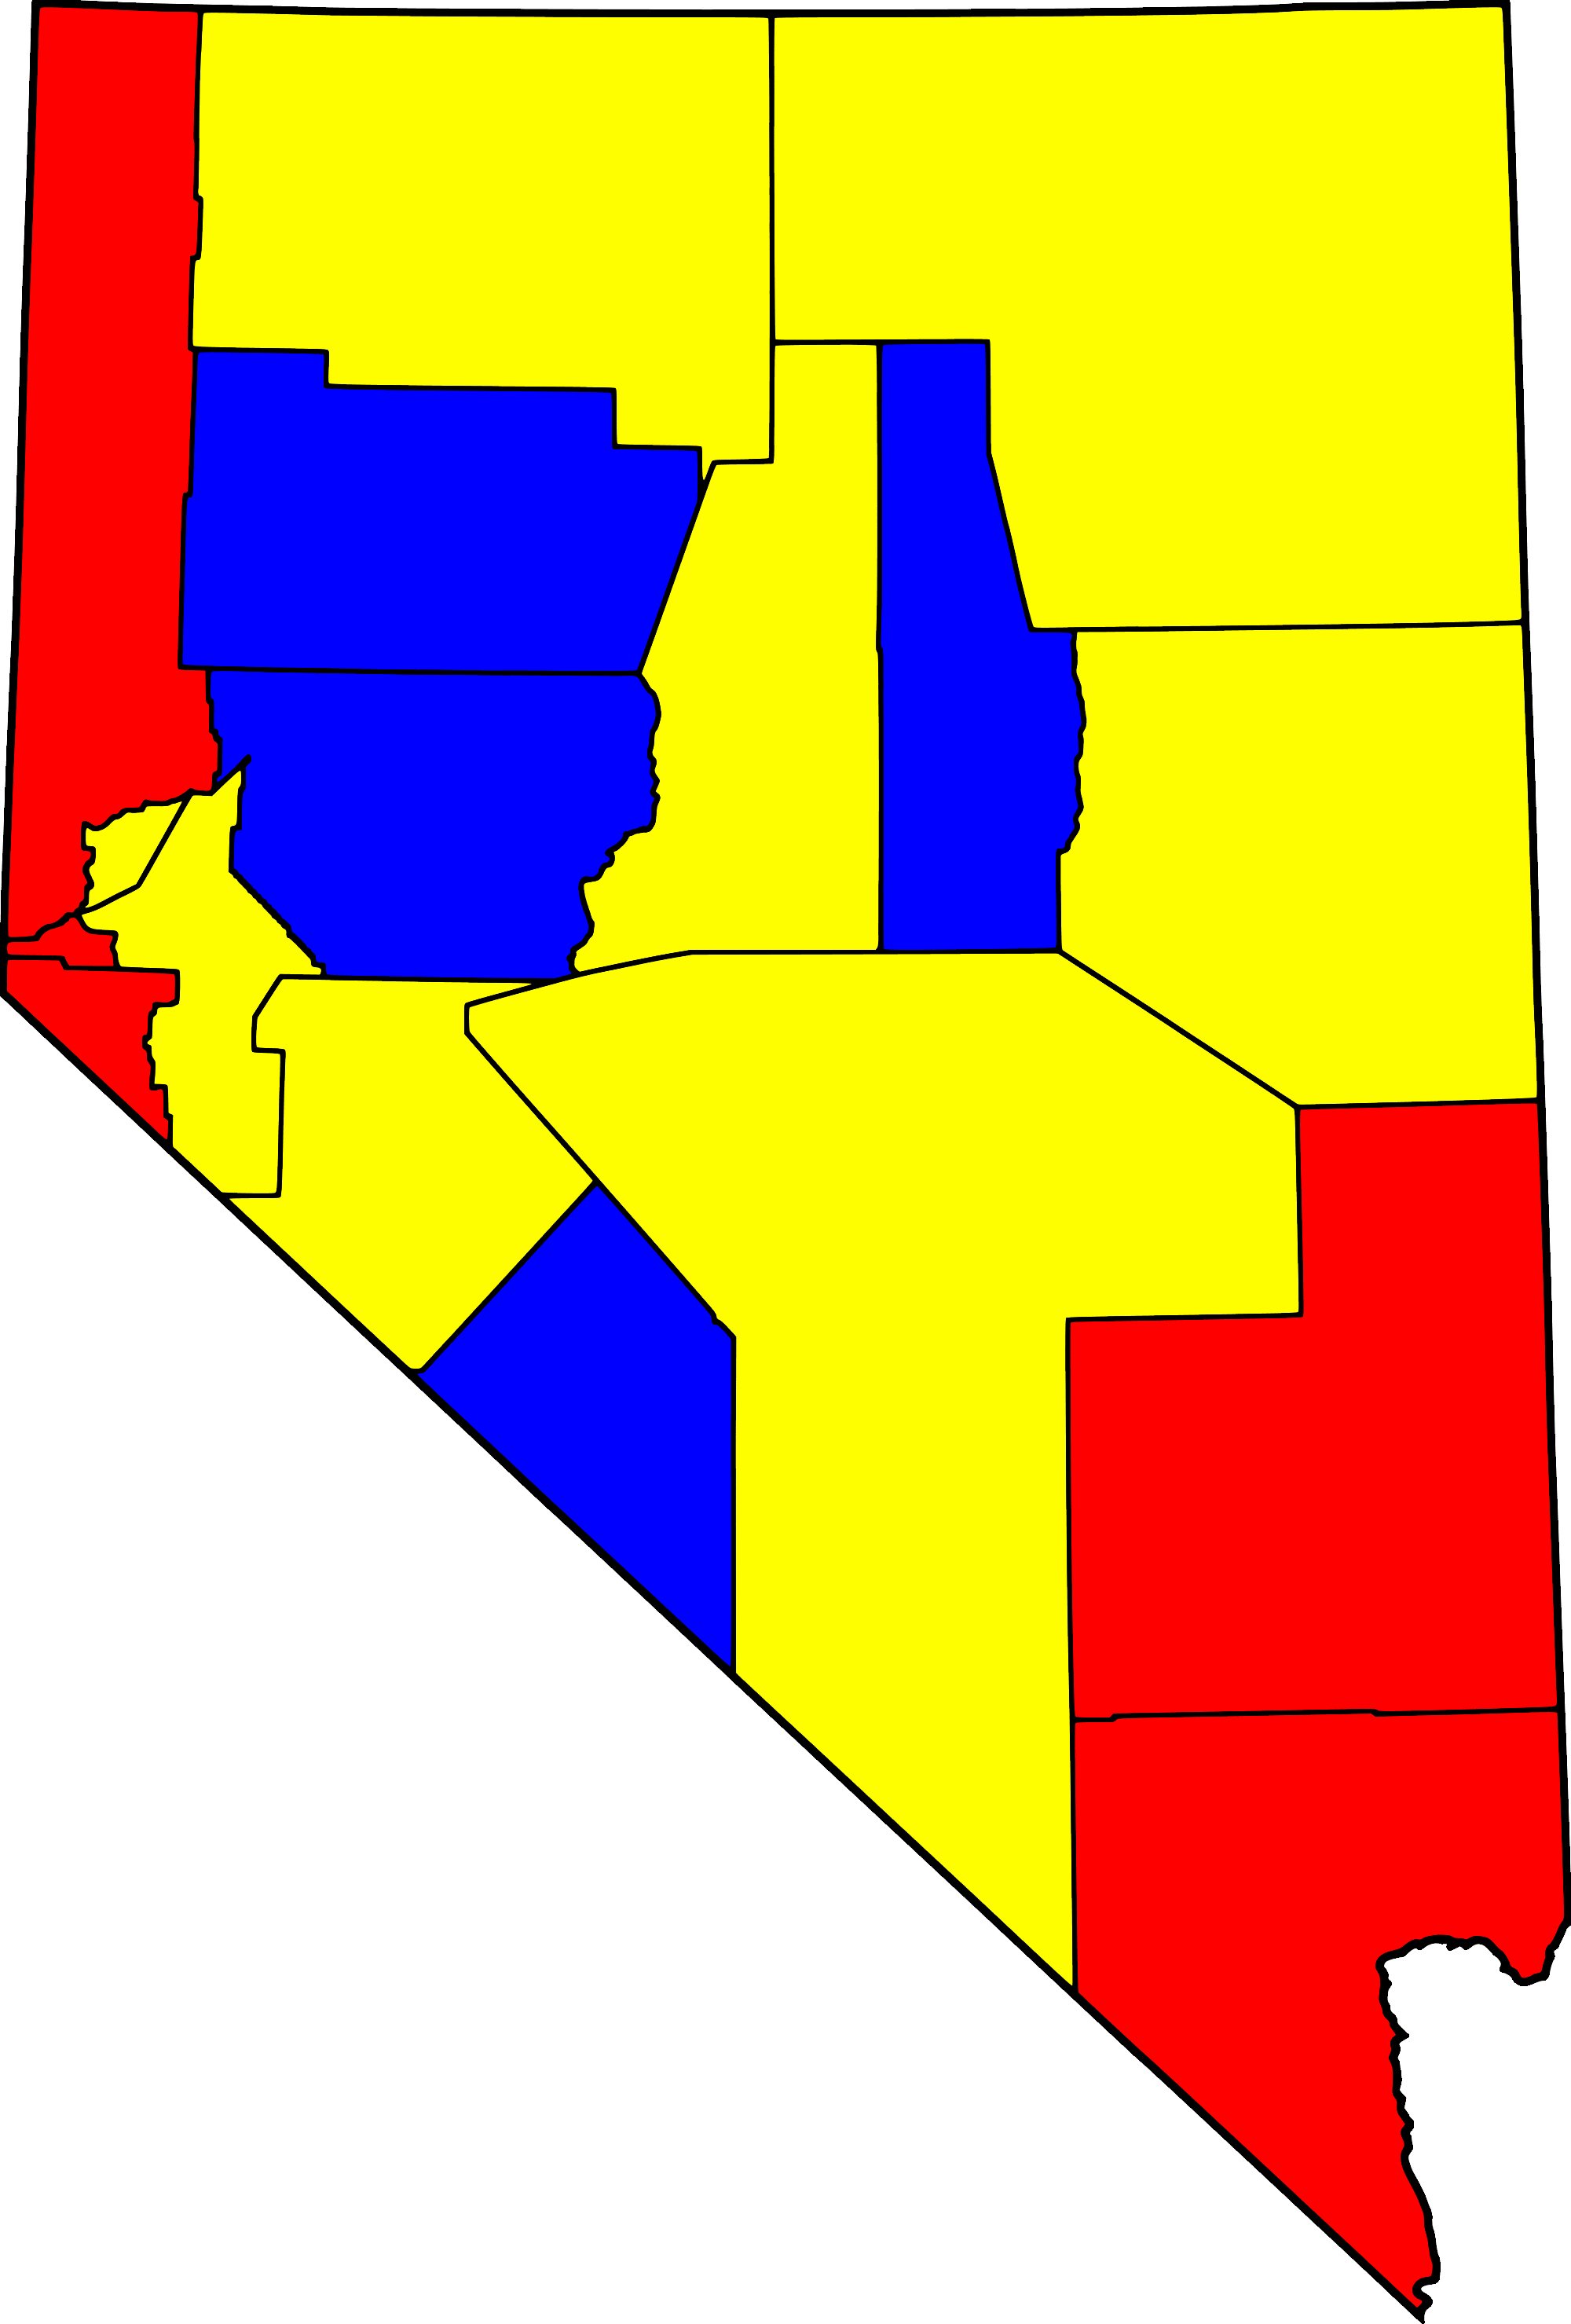 Legal brothels in nevada map